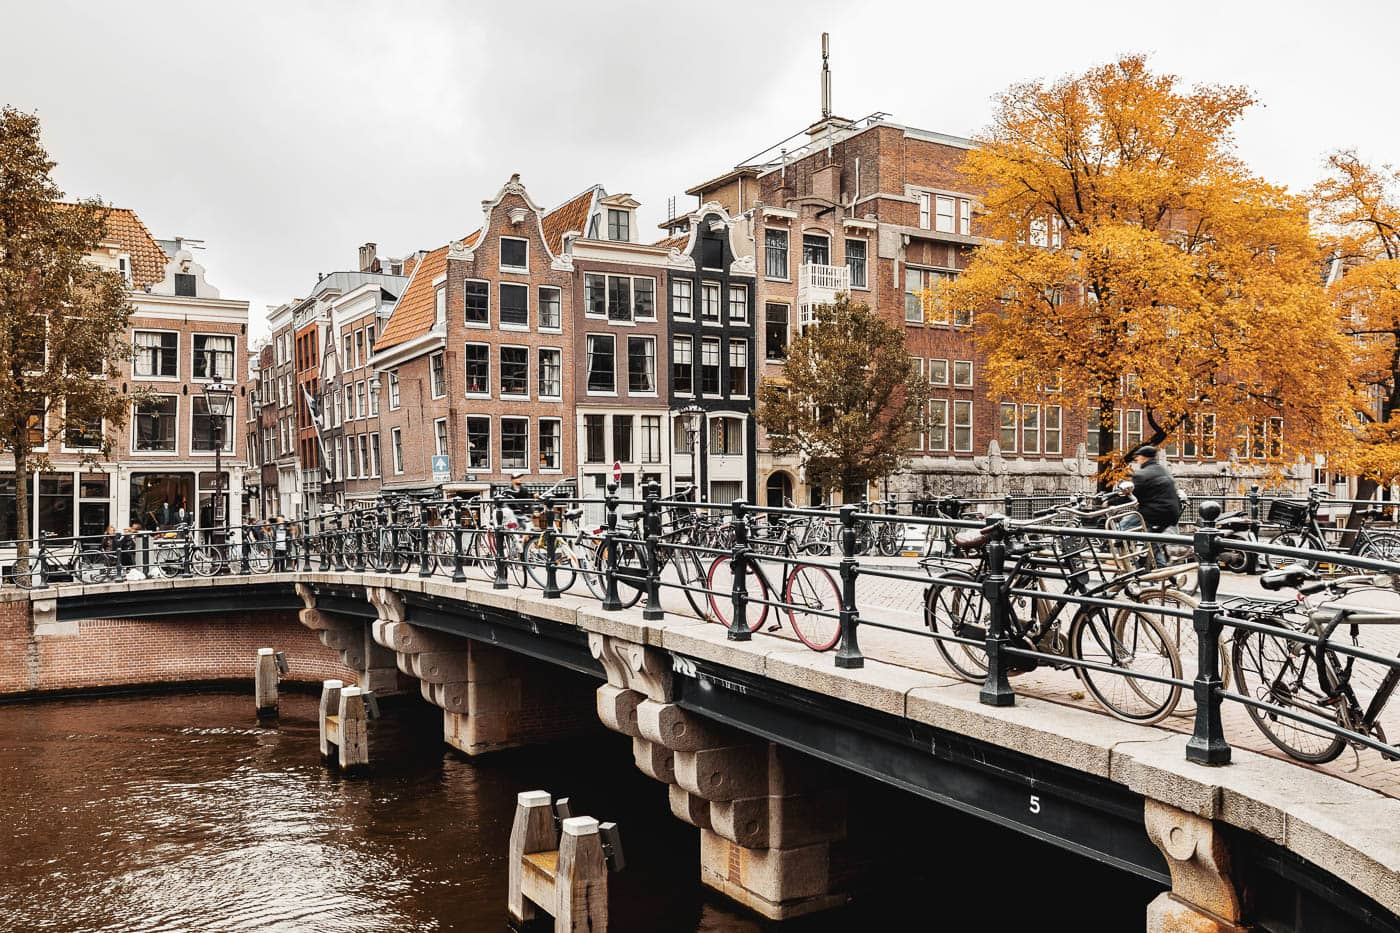 Singel Gracht in Amsterdam, Netherlands, Bridges and canals